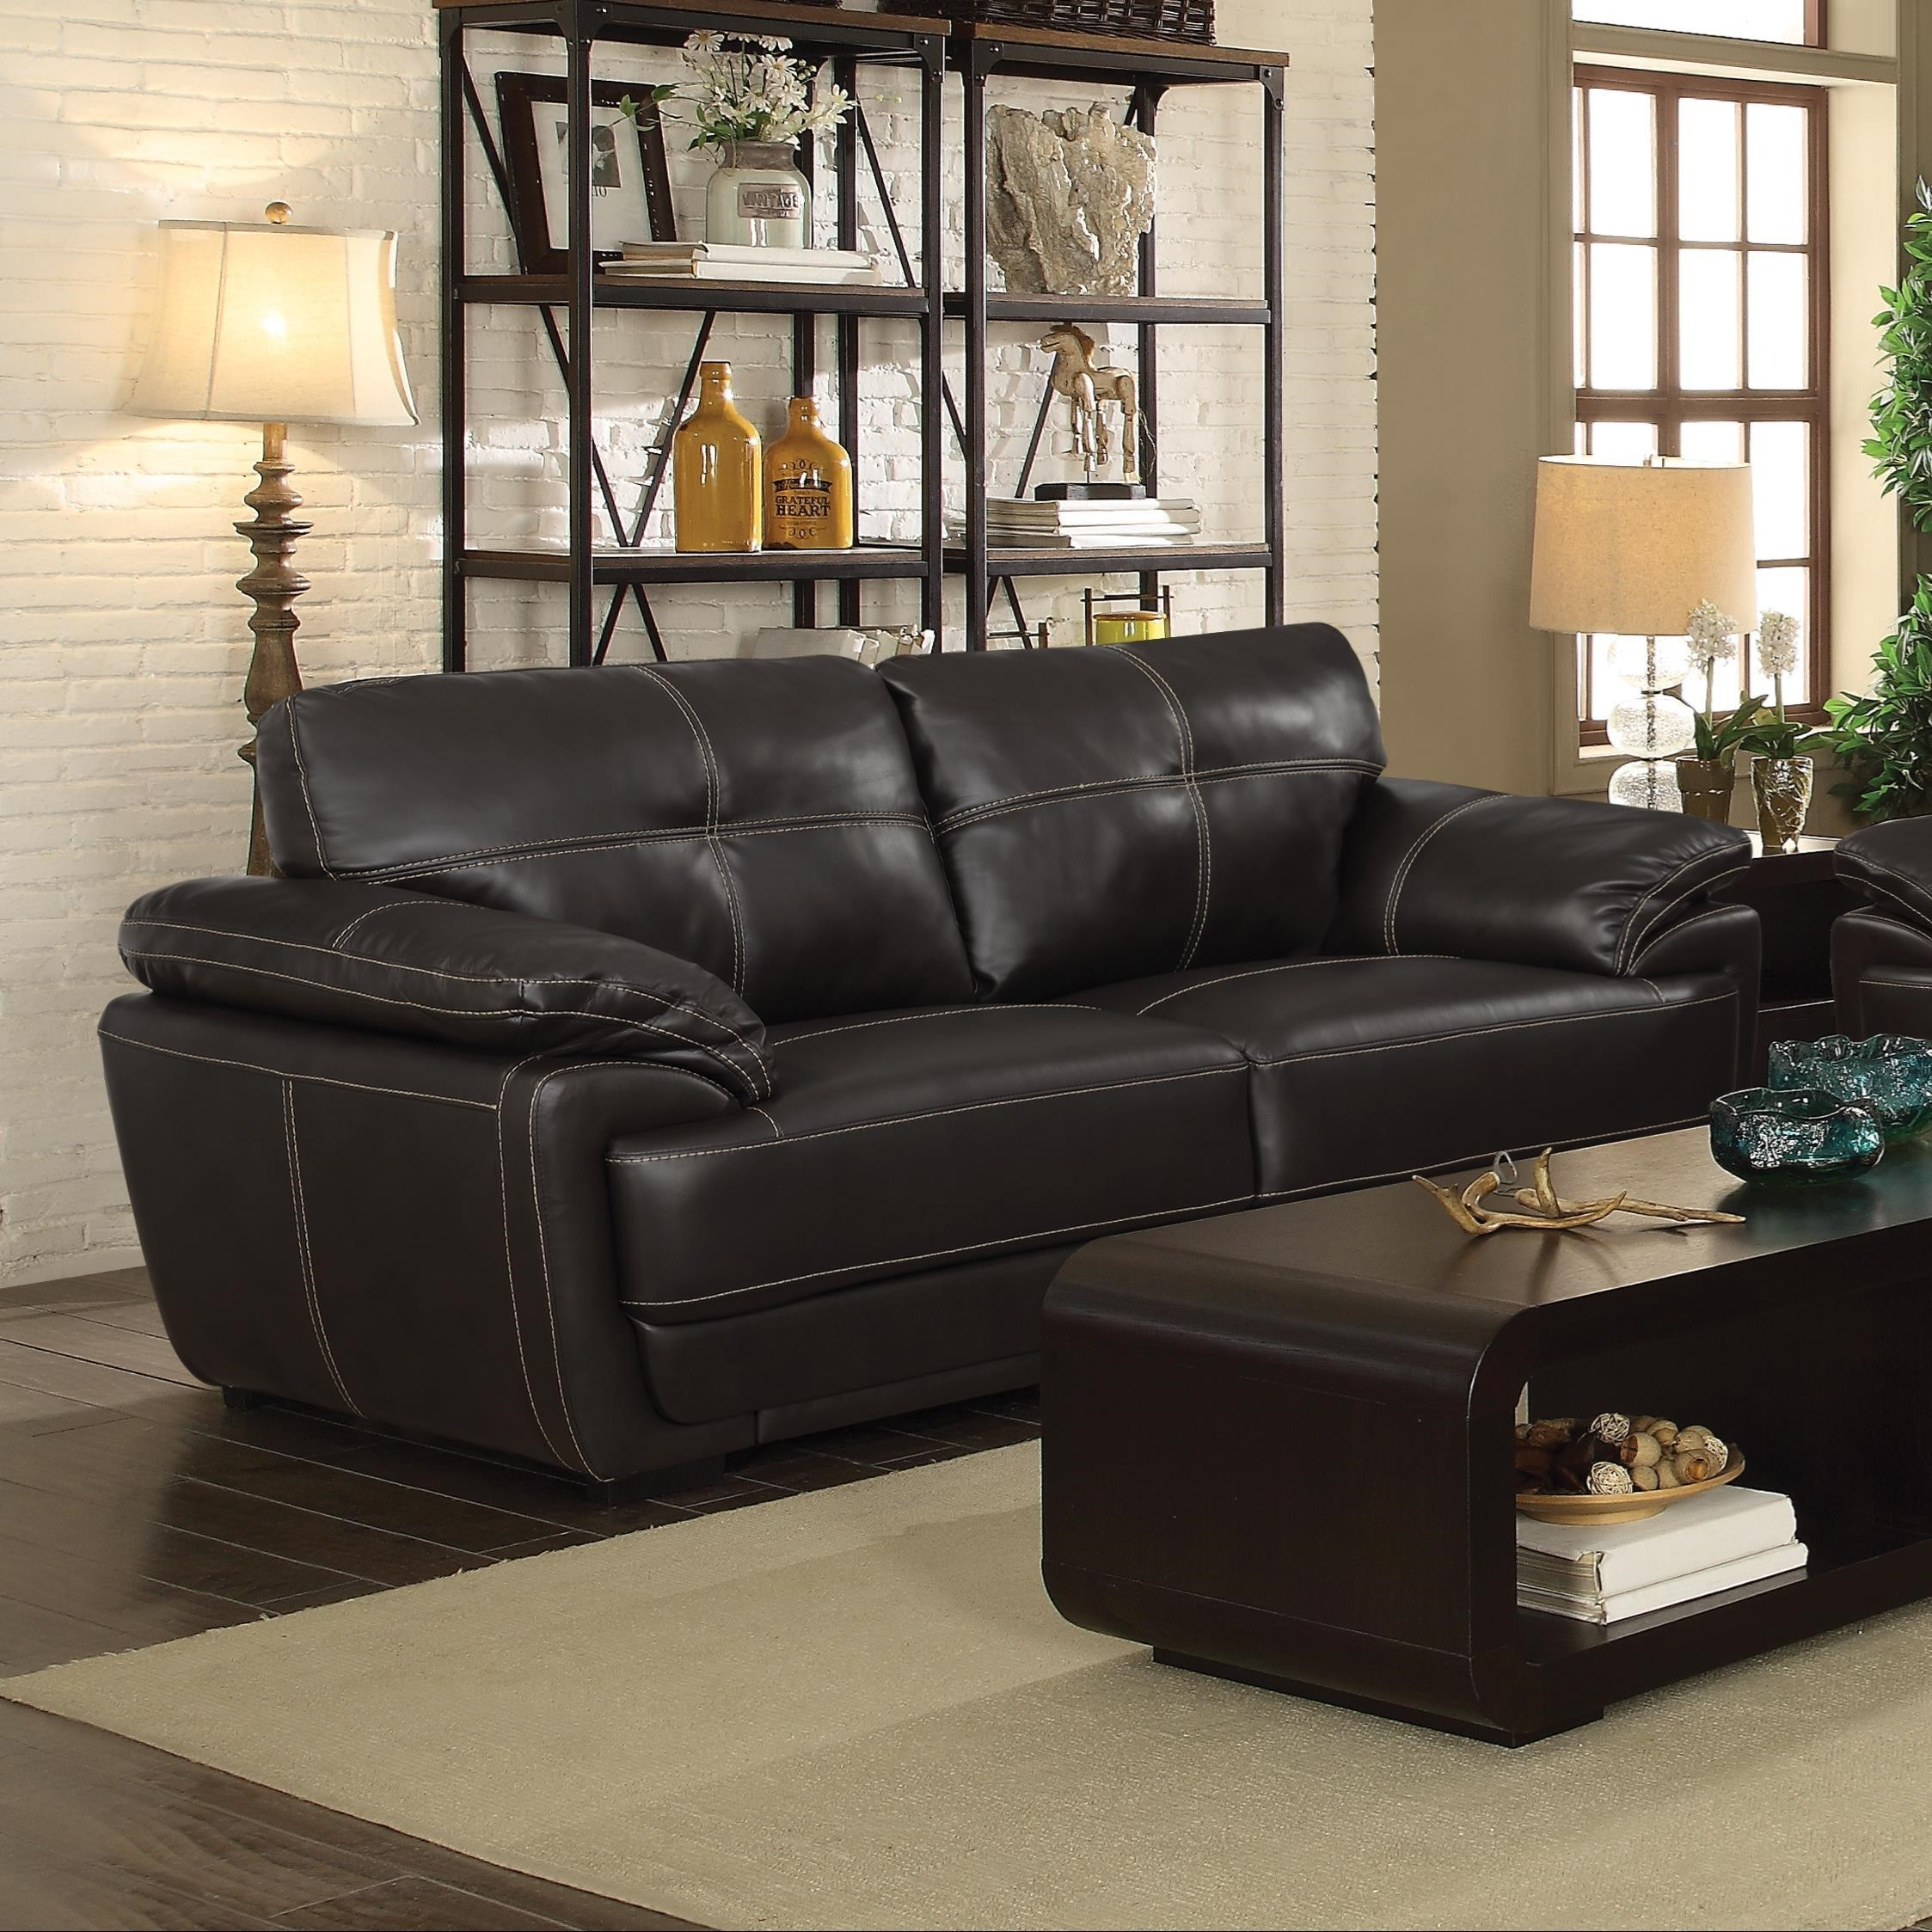 baseball leather sofa antique style bed coaster zenon 551101 two cushion with